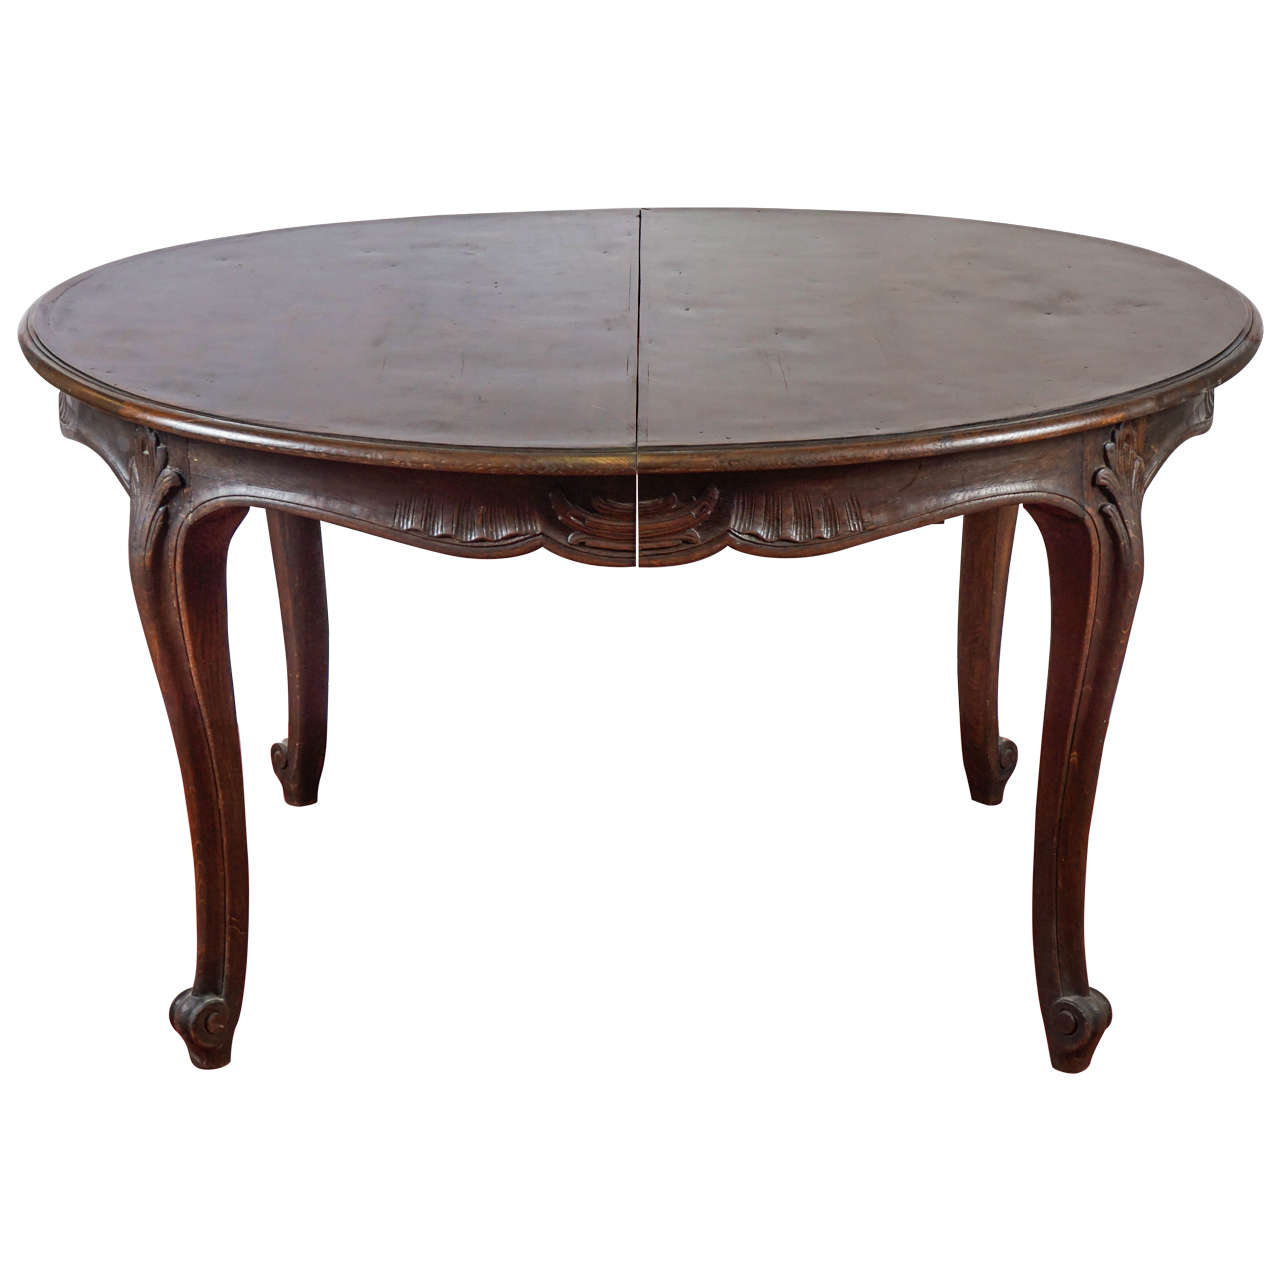 Louis xv style oval dining table for sale at 1stdibs Oval dining table